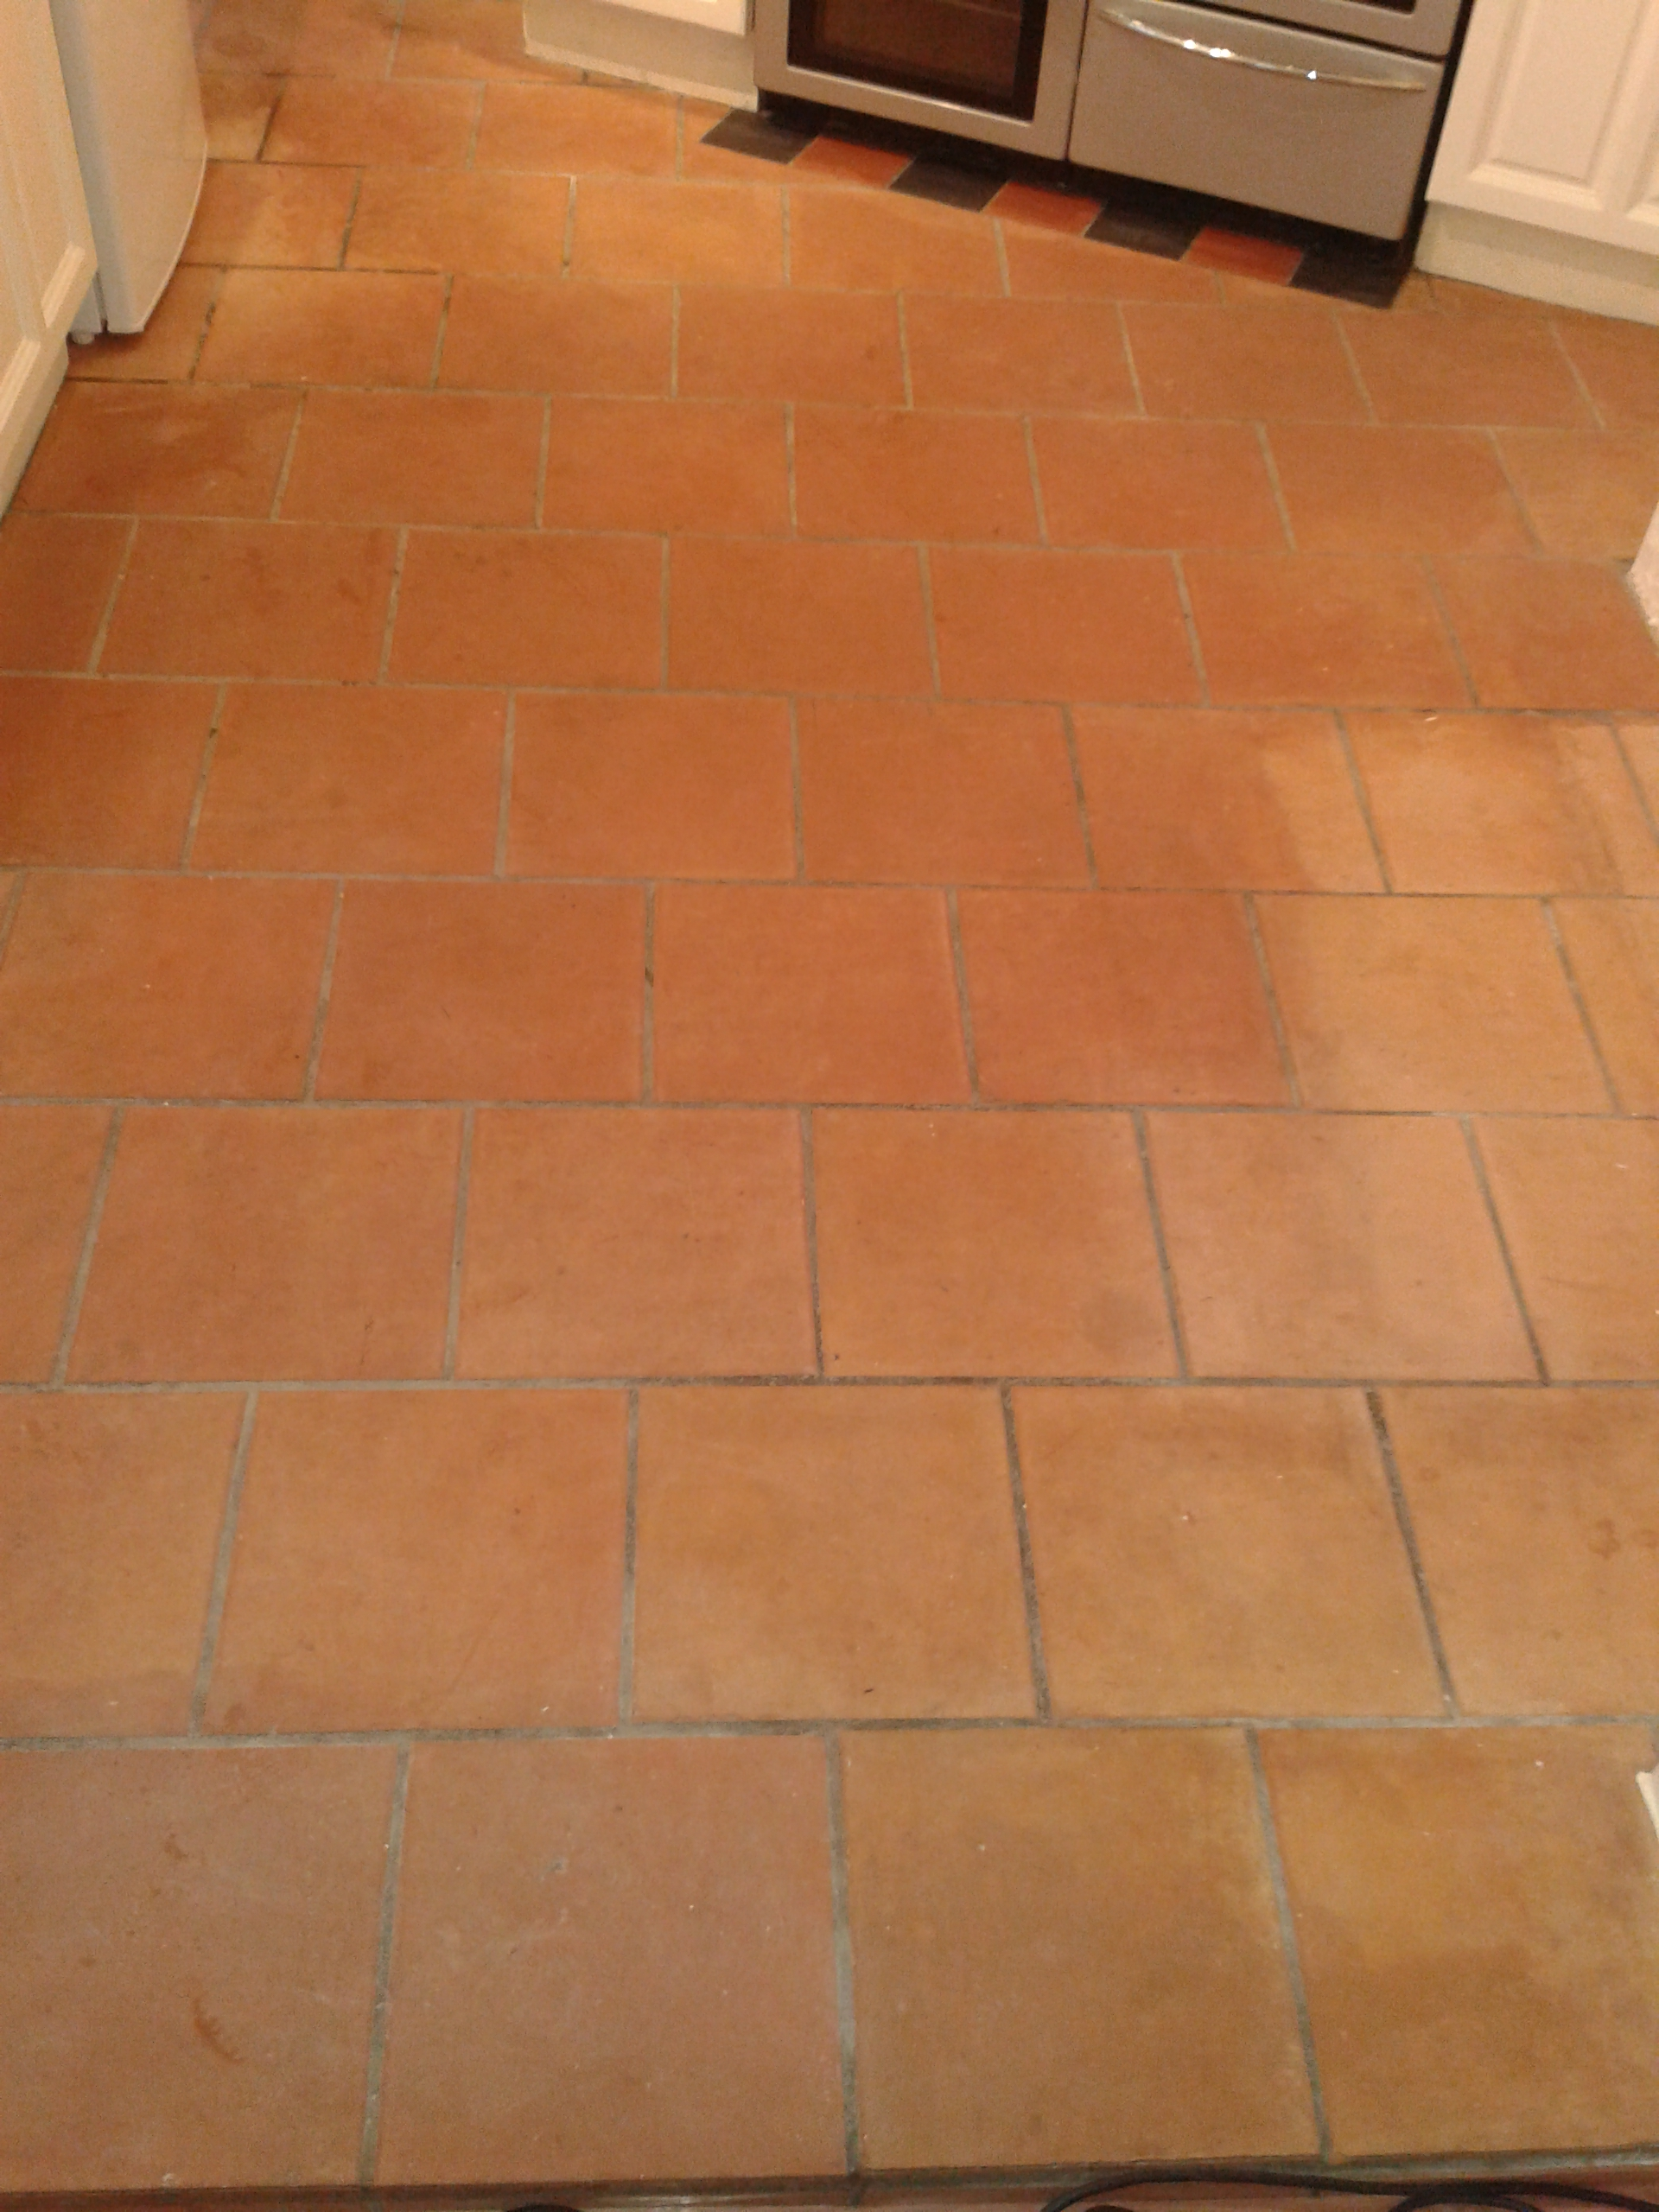 Best way to clean terracotta floor tiles image collections home inspirational how to clean kitchen tile taste terracotta floor tile exceptional spanish mission red terracotta marialoaizafo dailygadgetfo Images